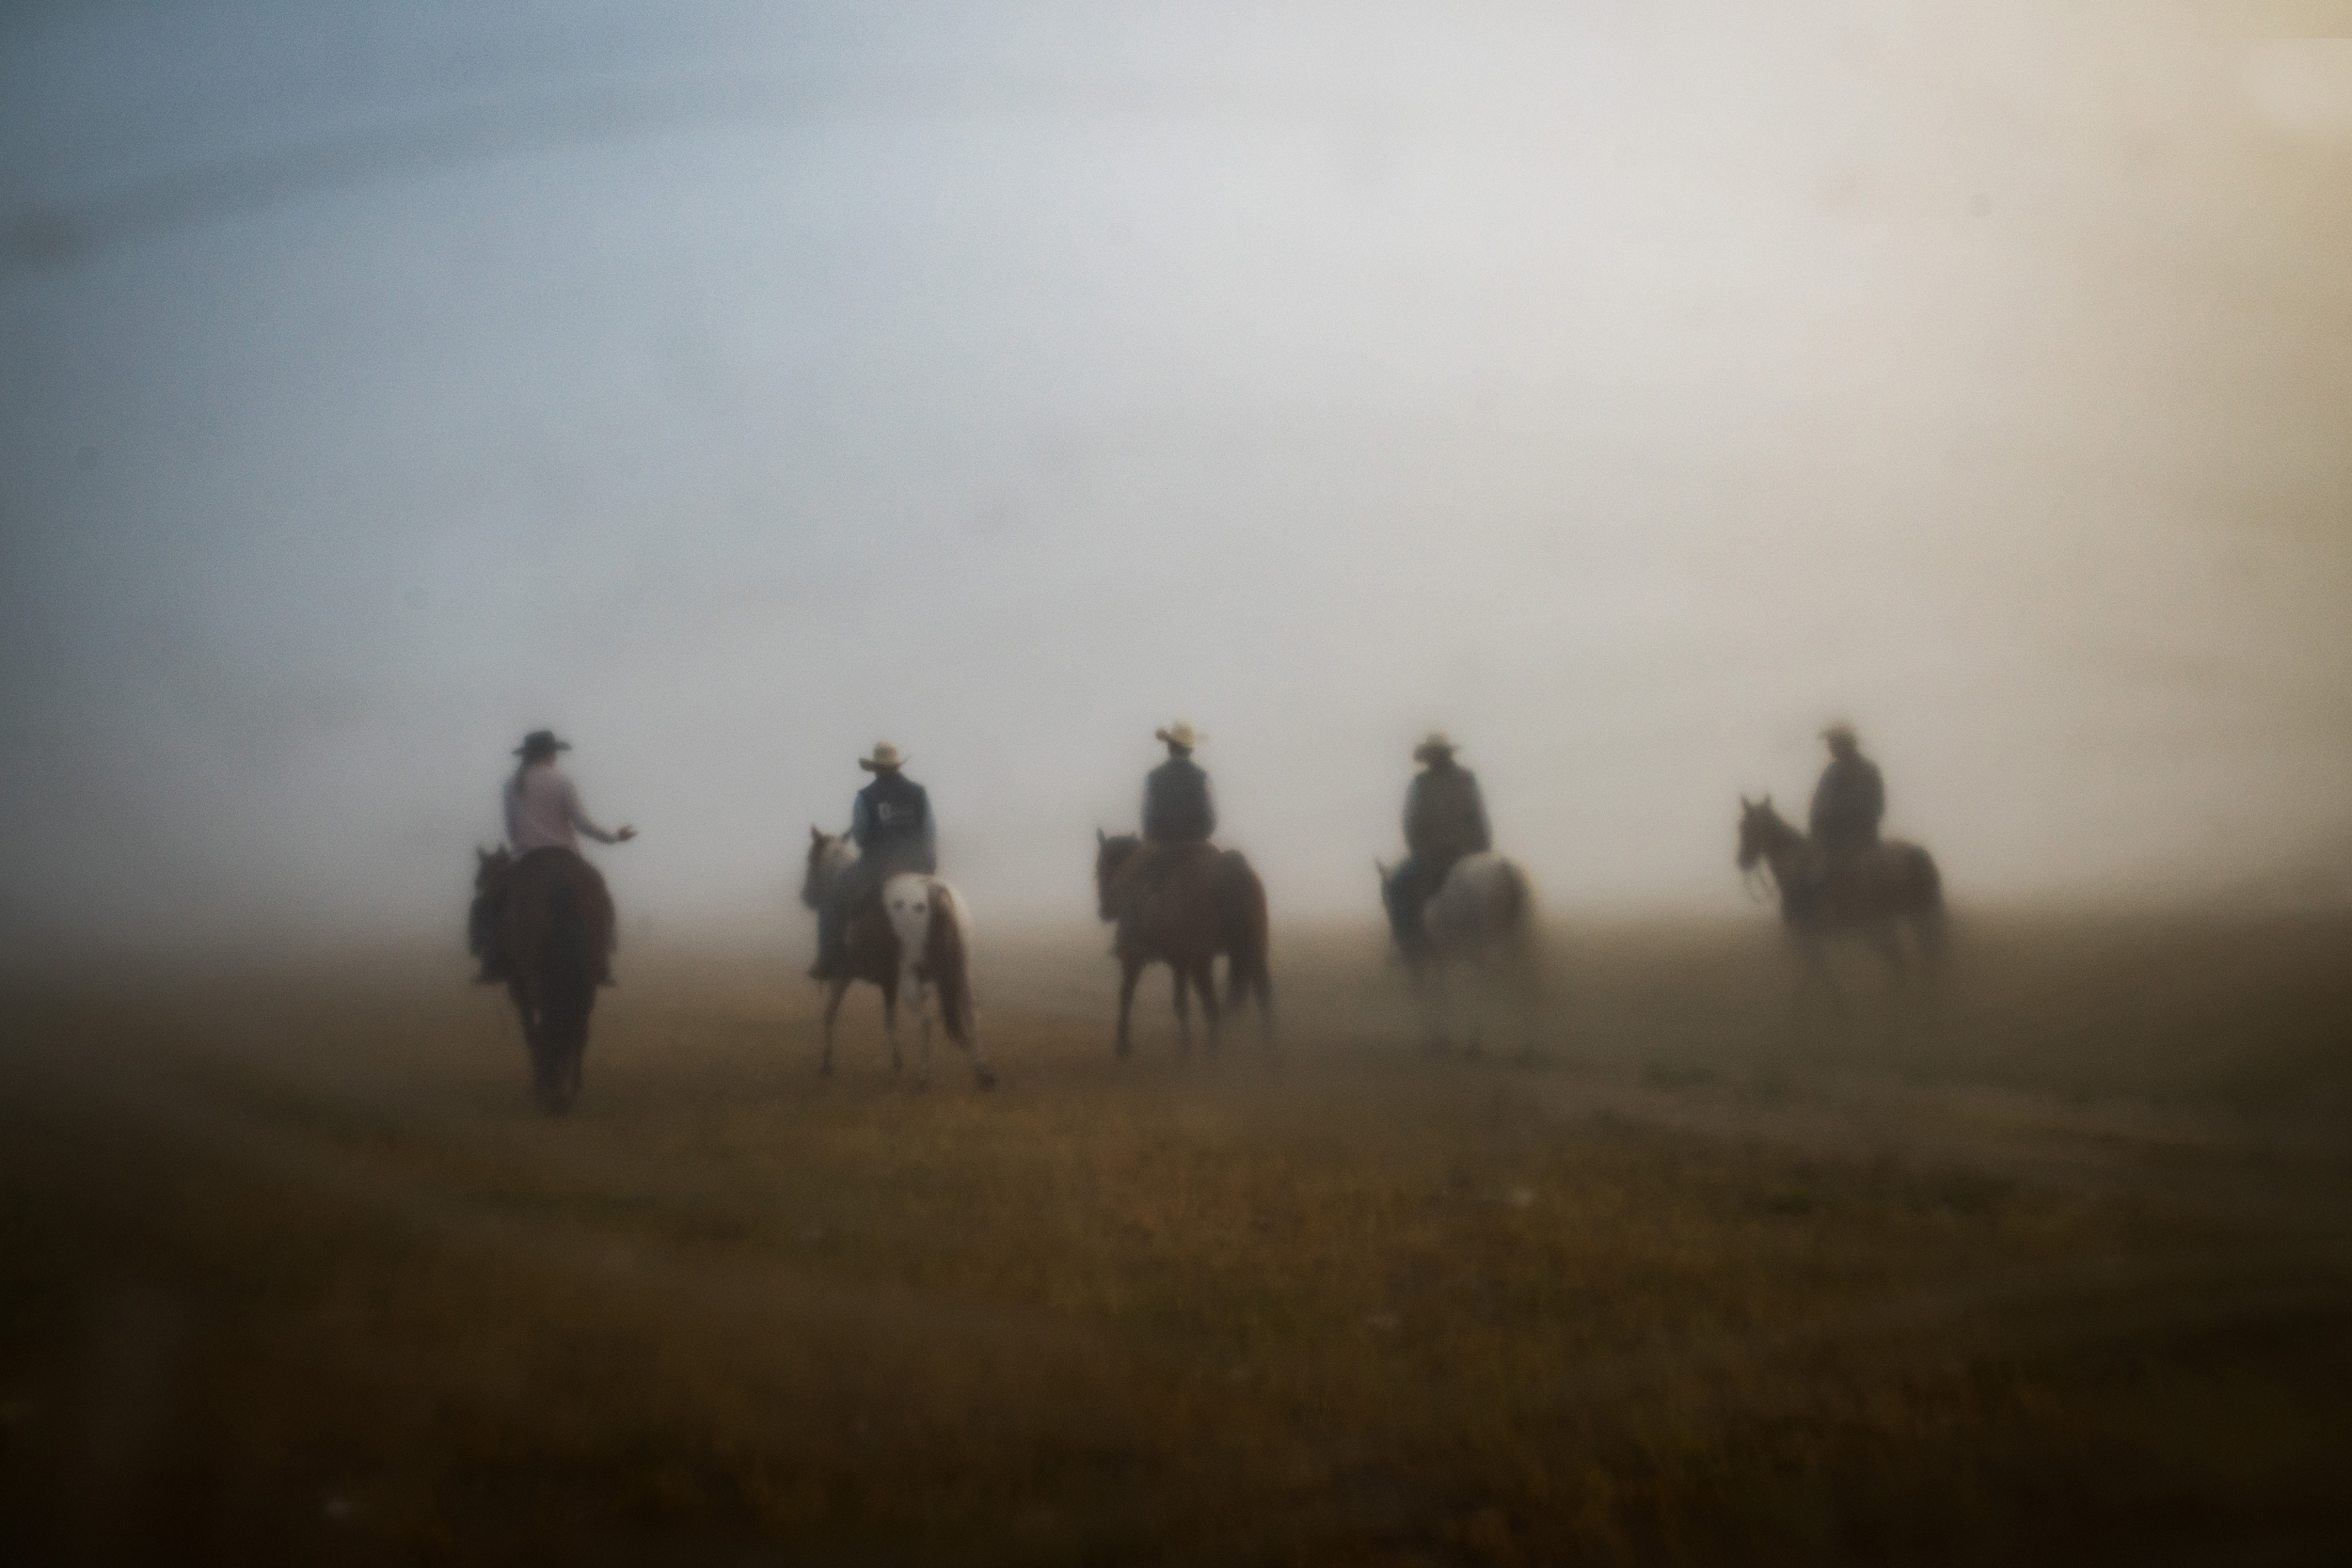 "45º25'37.9""N, 102º17'10.7""W. 113 miles from the nearest McDonald's.  The Arneson family and their employee Riley Cihak ride their horses through thick morning fog on their ranch in the old town of Chance, SD on July 31, 2017."